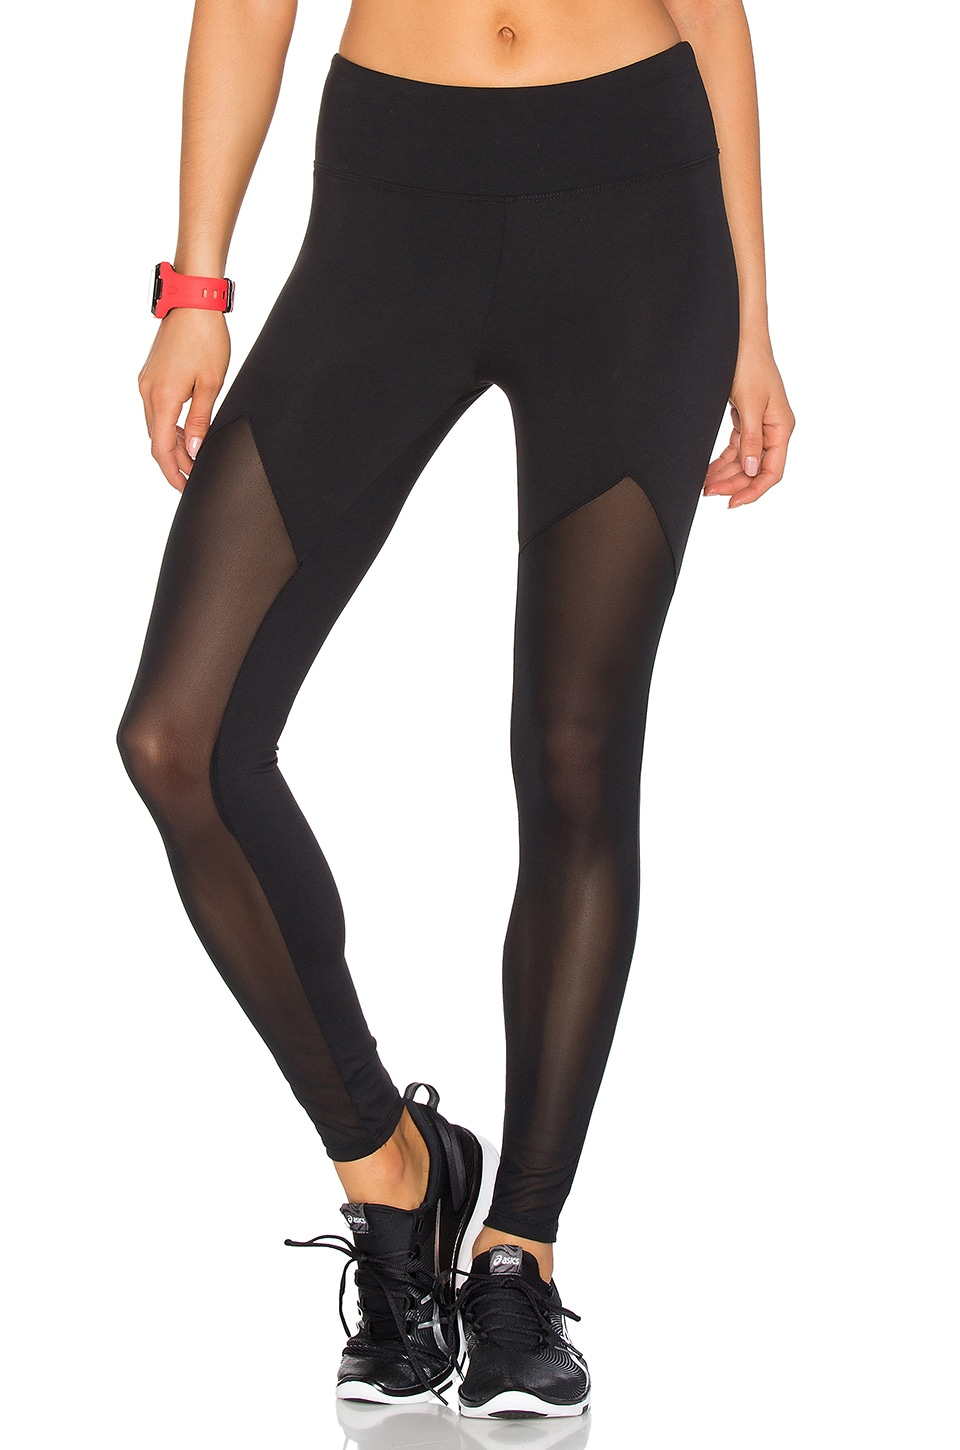 WORK by Lovers + Friends Sprinter Mesh Legging